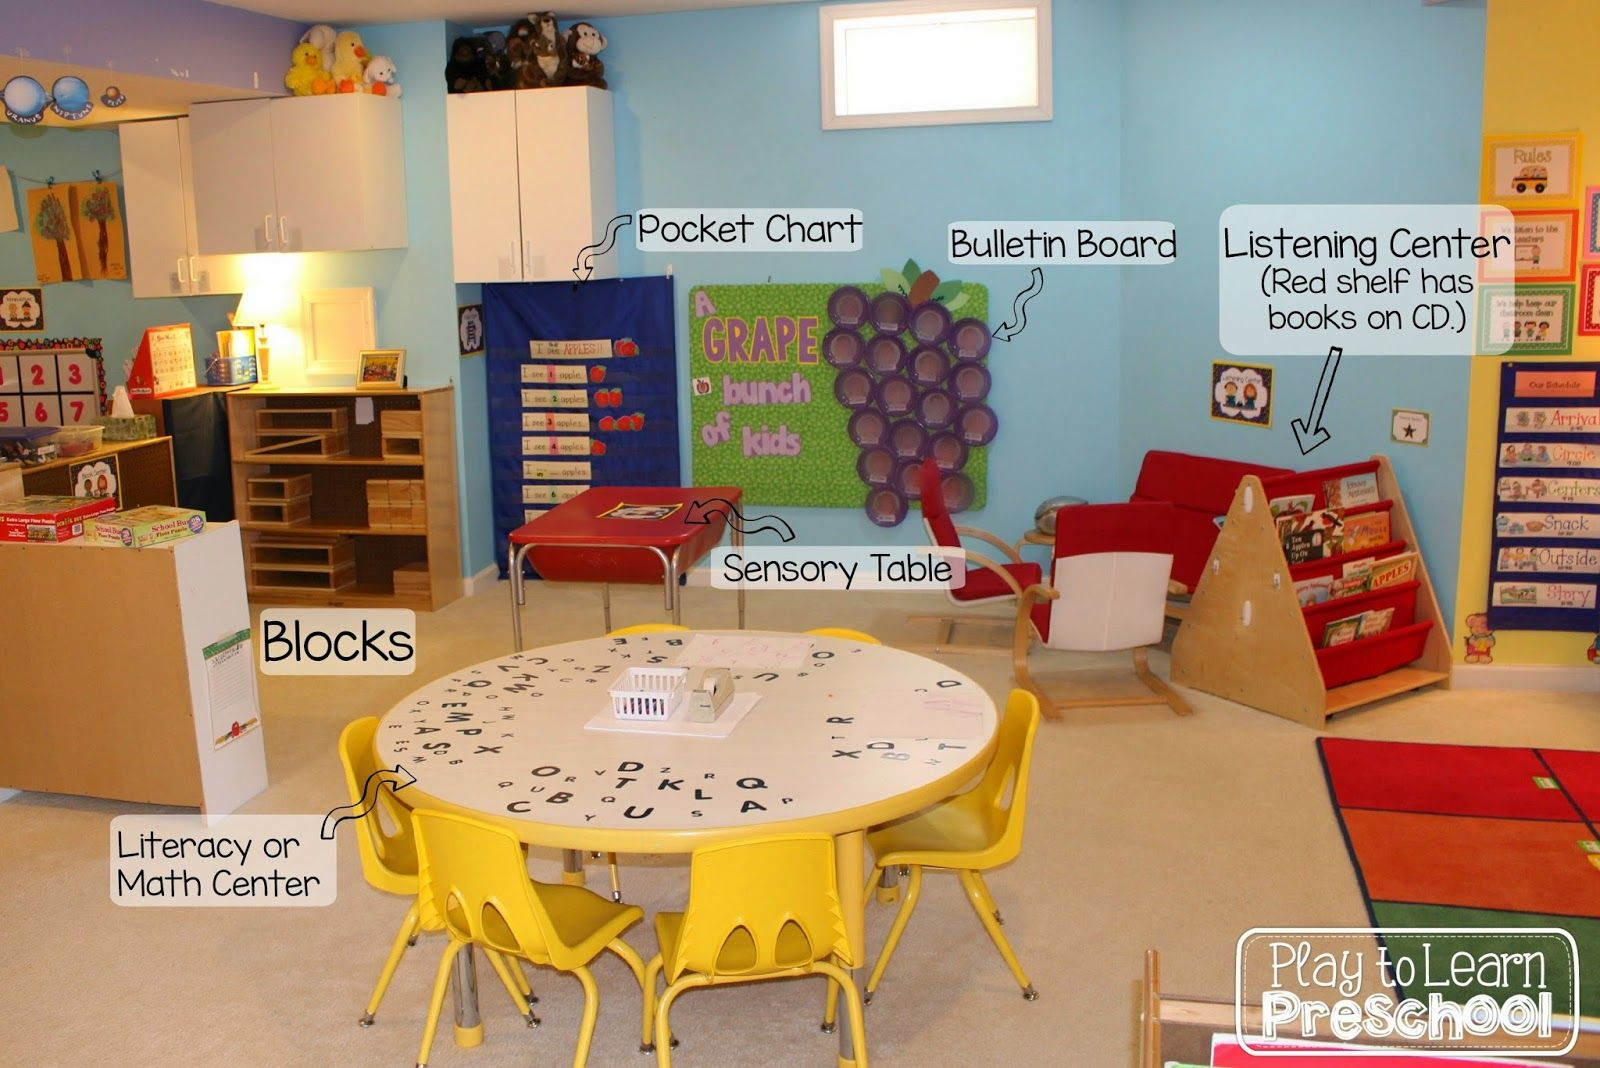 Importance of Play in the Early Childhood Classroom